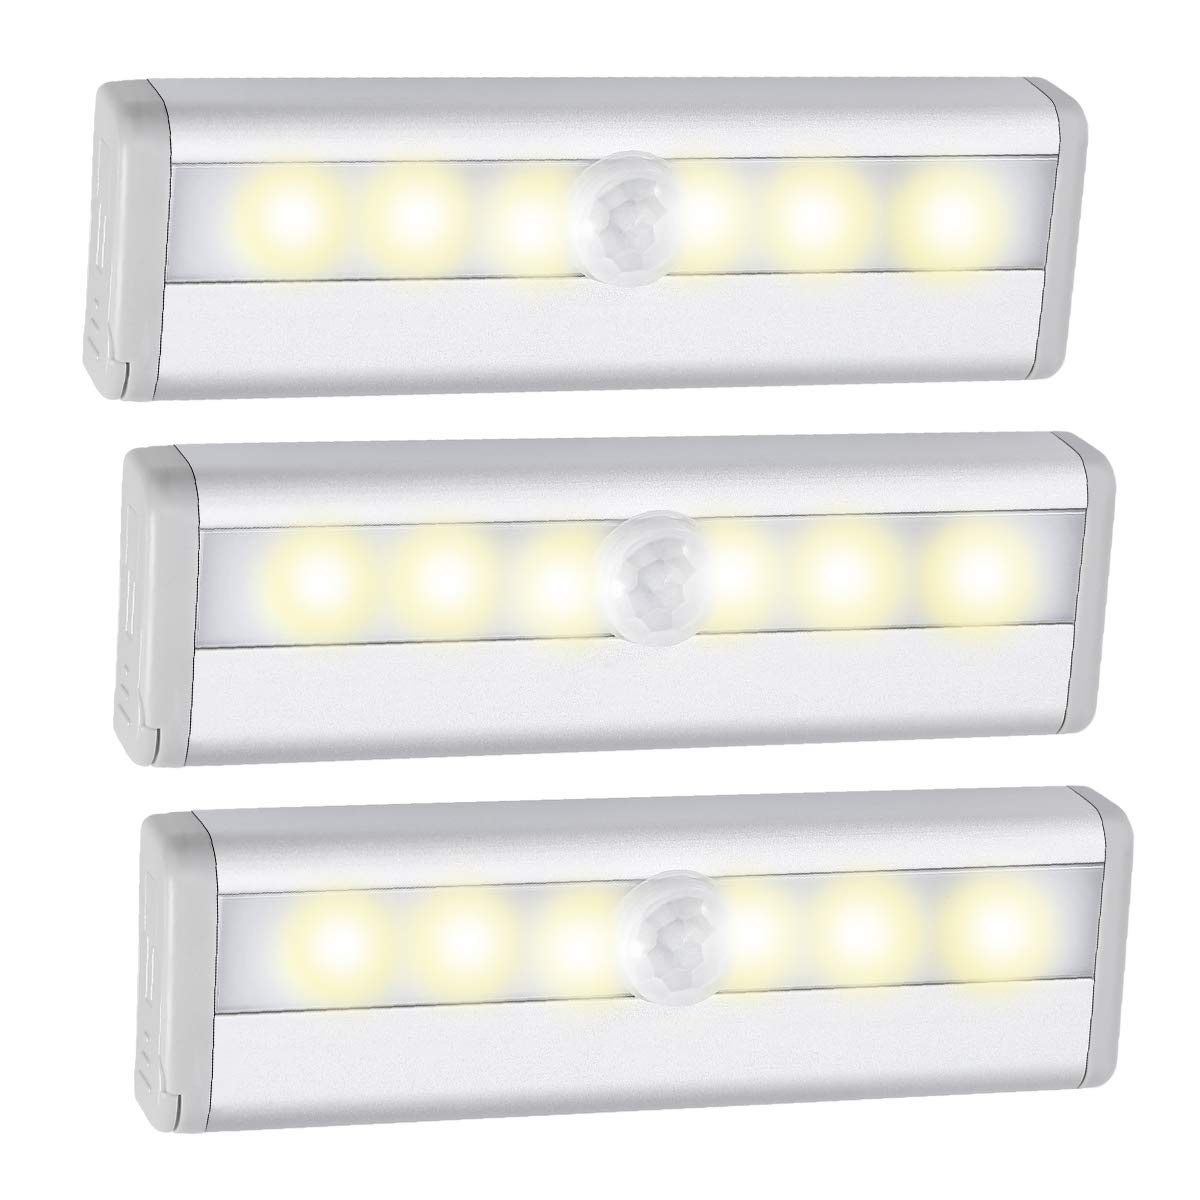 AMIR Motion Sensing Closet Lights, 6 LED Battery Operated Wireless Night Light for Cabinet, Wardrobe, Stairs, Step Light with Magnetic Strip (Warm White - 3 Pack)